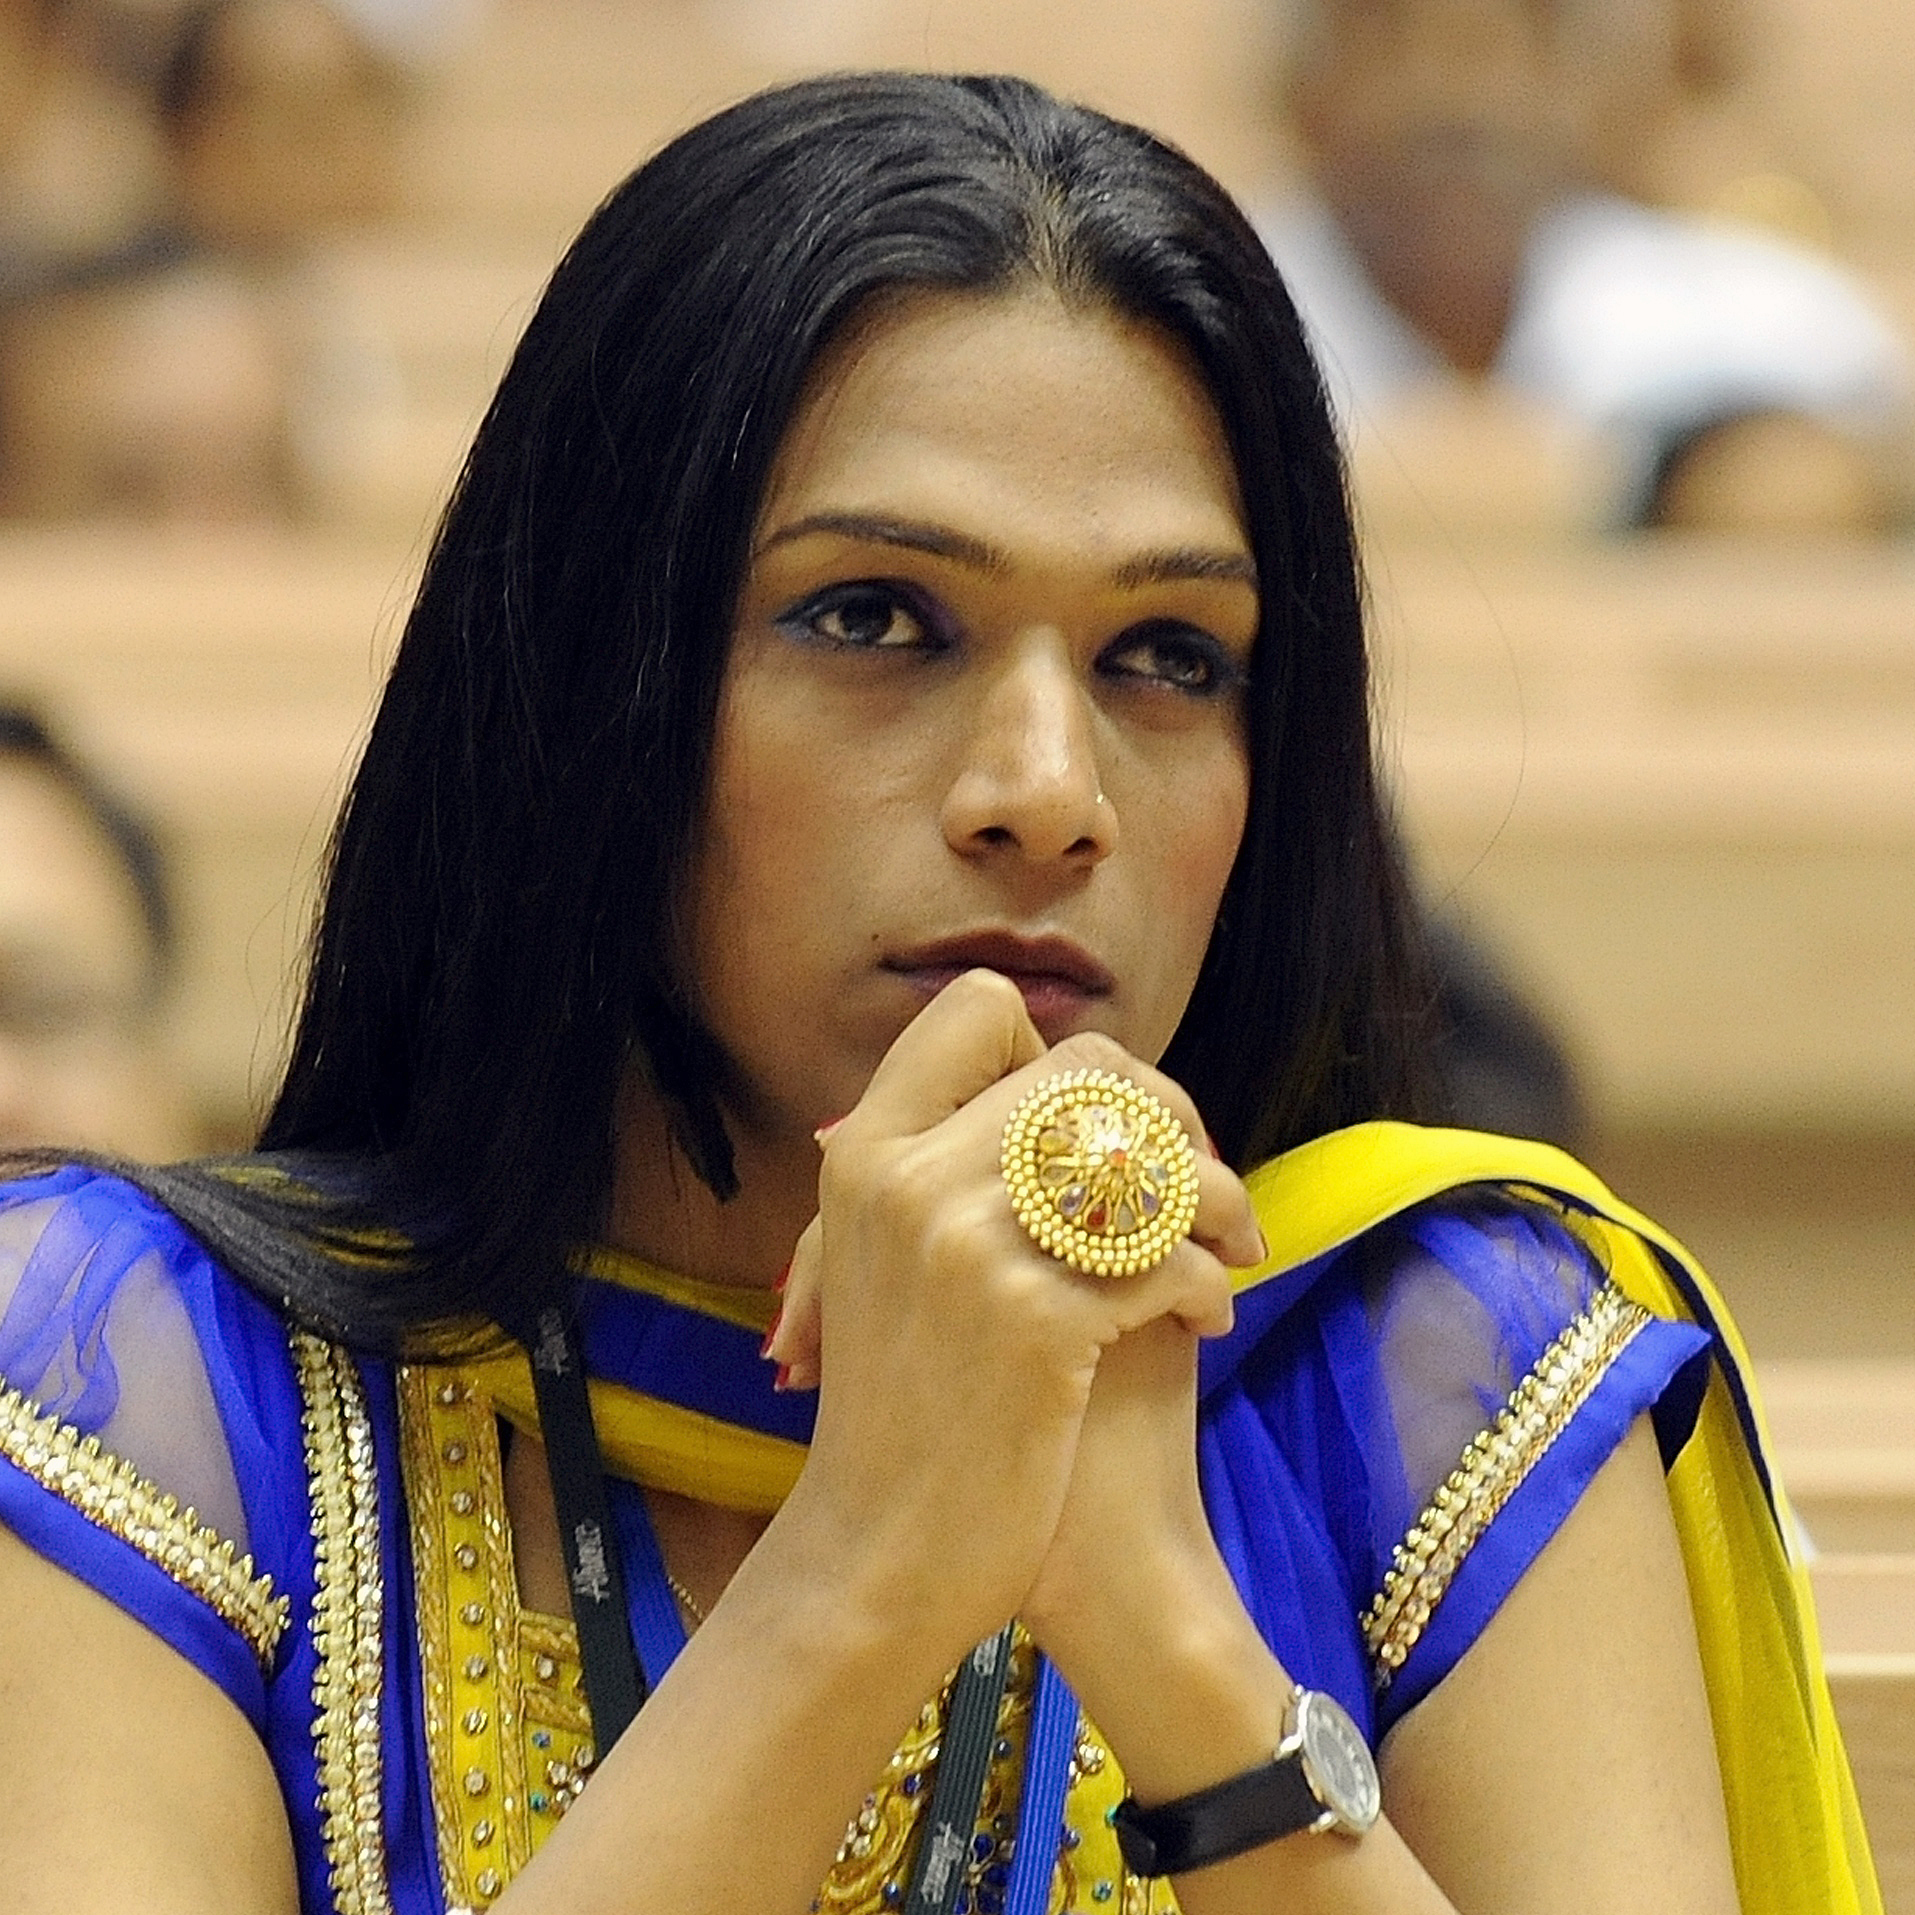 Aher attends a national conference on HIV-AIDS in New Delhi on July 4, 2011. Unlike many other hijras, she holds a conventional job as a project manager with an HIV-AIDS group.